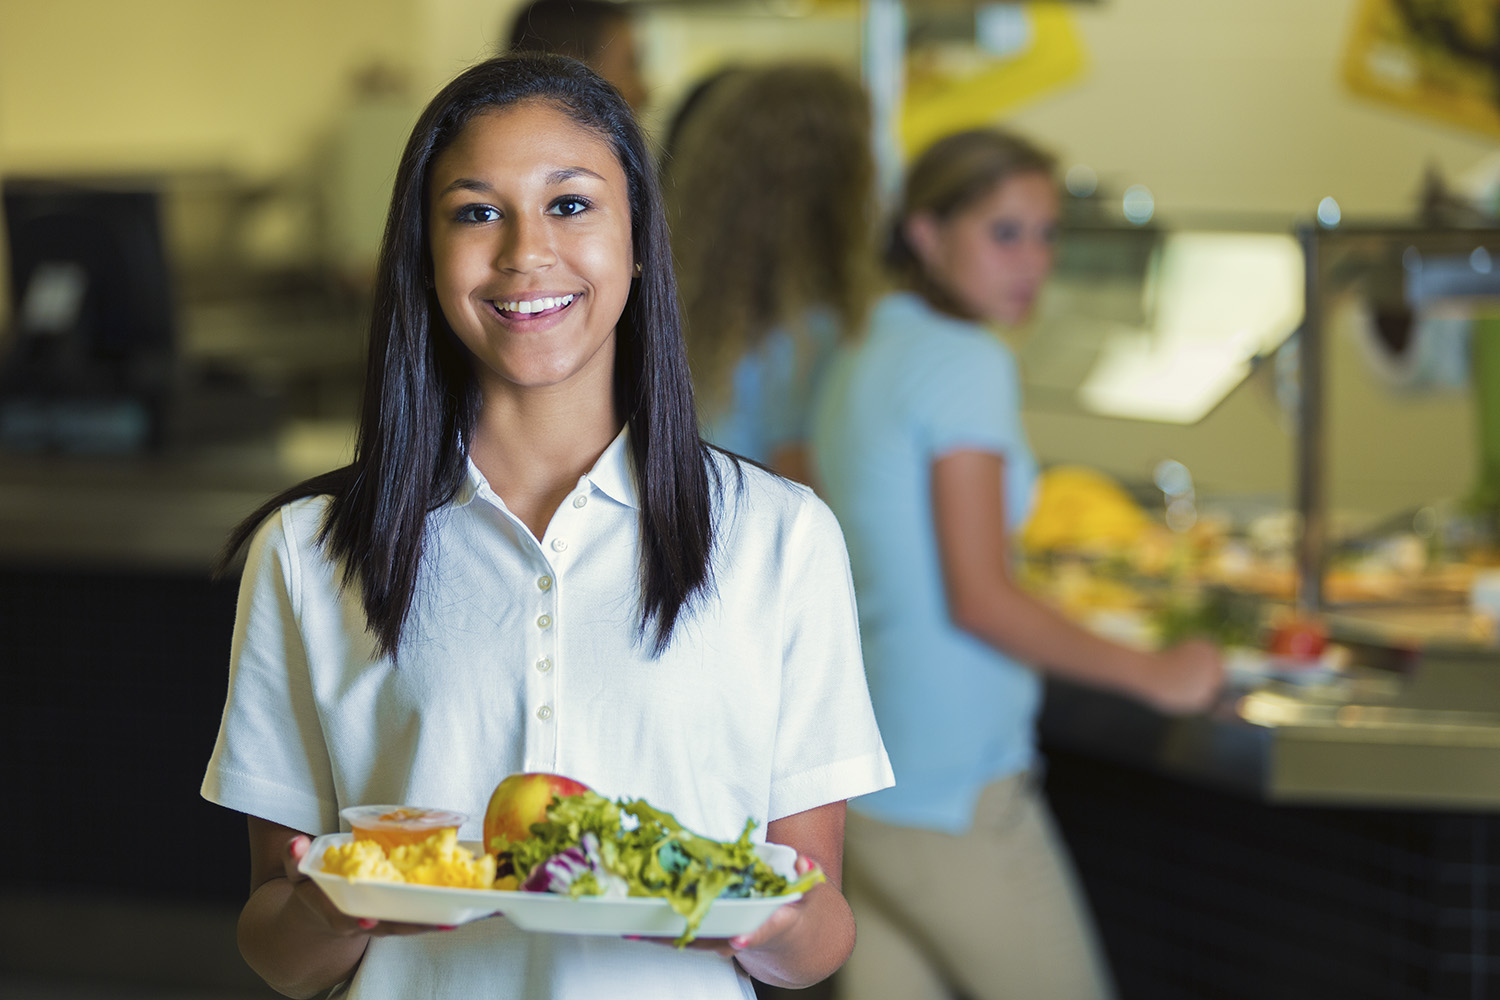 Food Rules Positively Influence Teen Food Choices